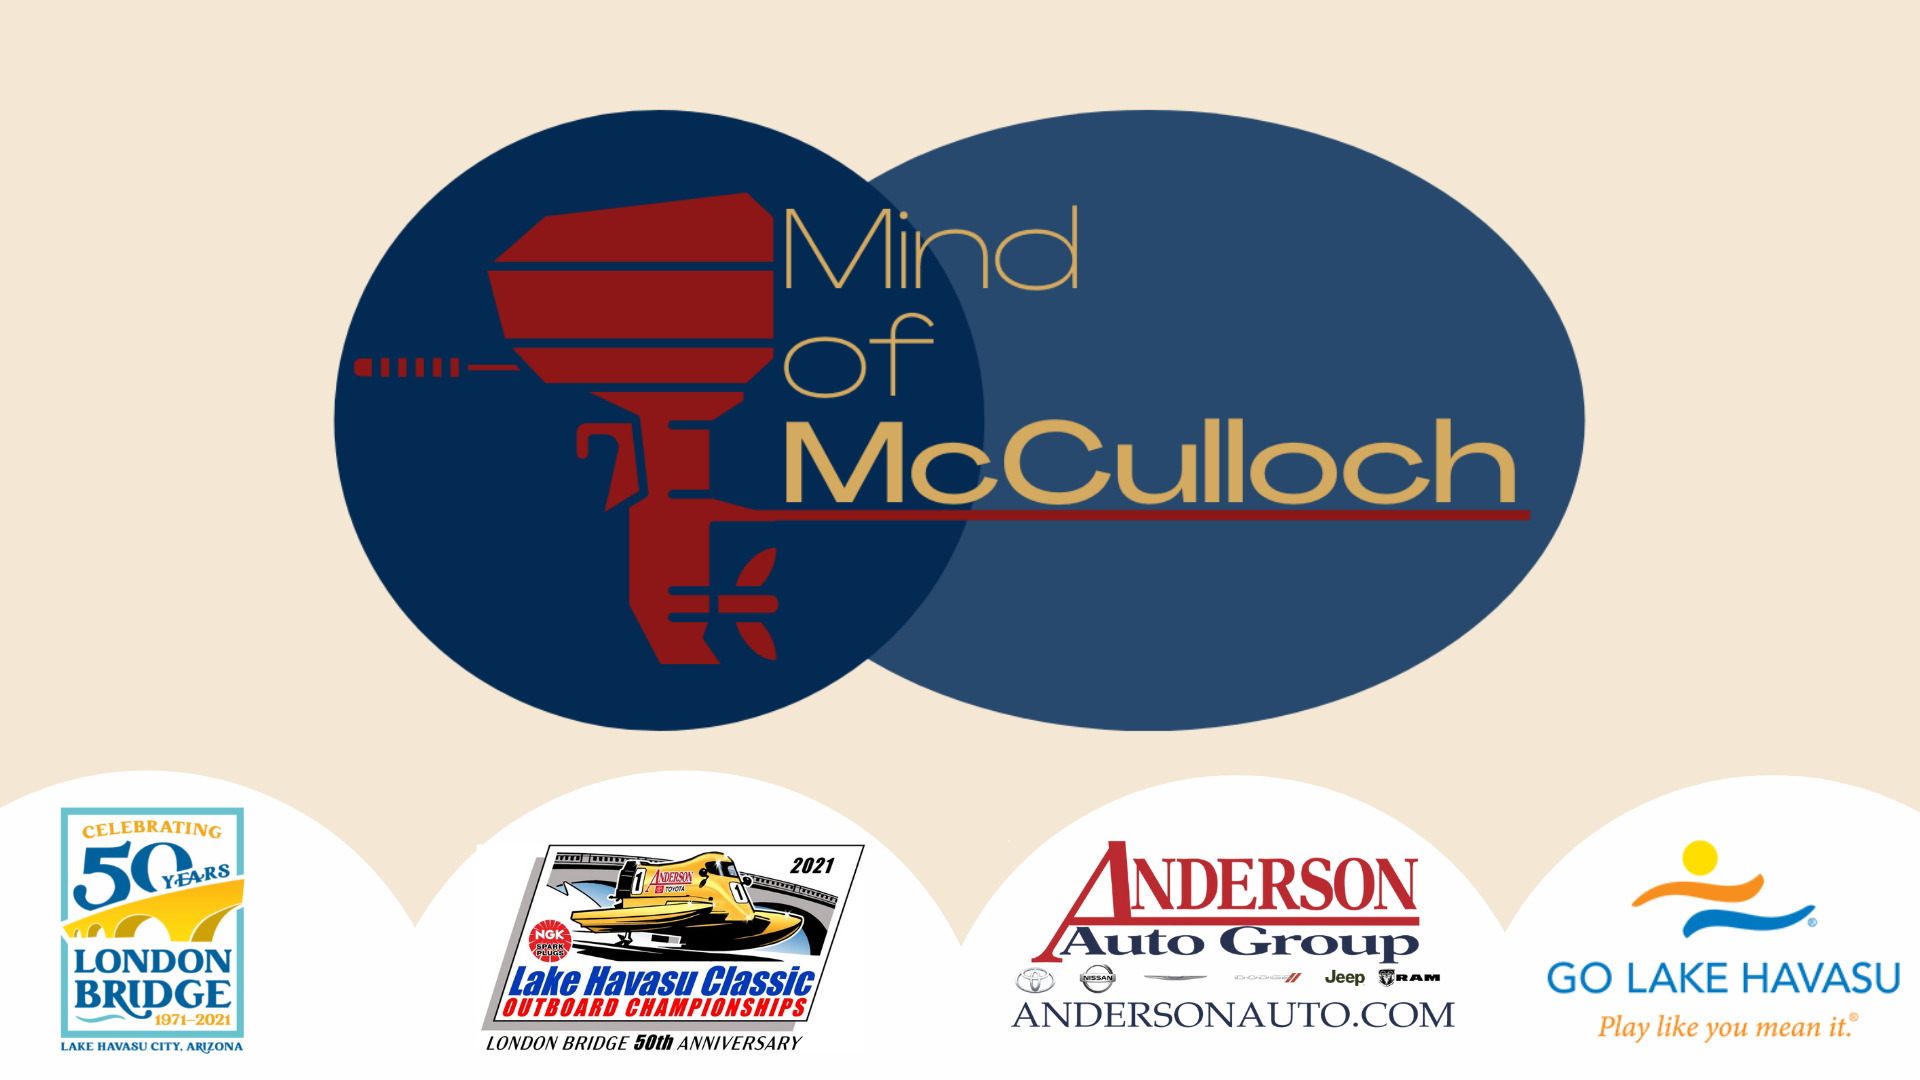 Mind of McCulloch